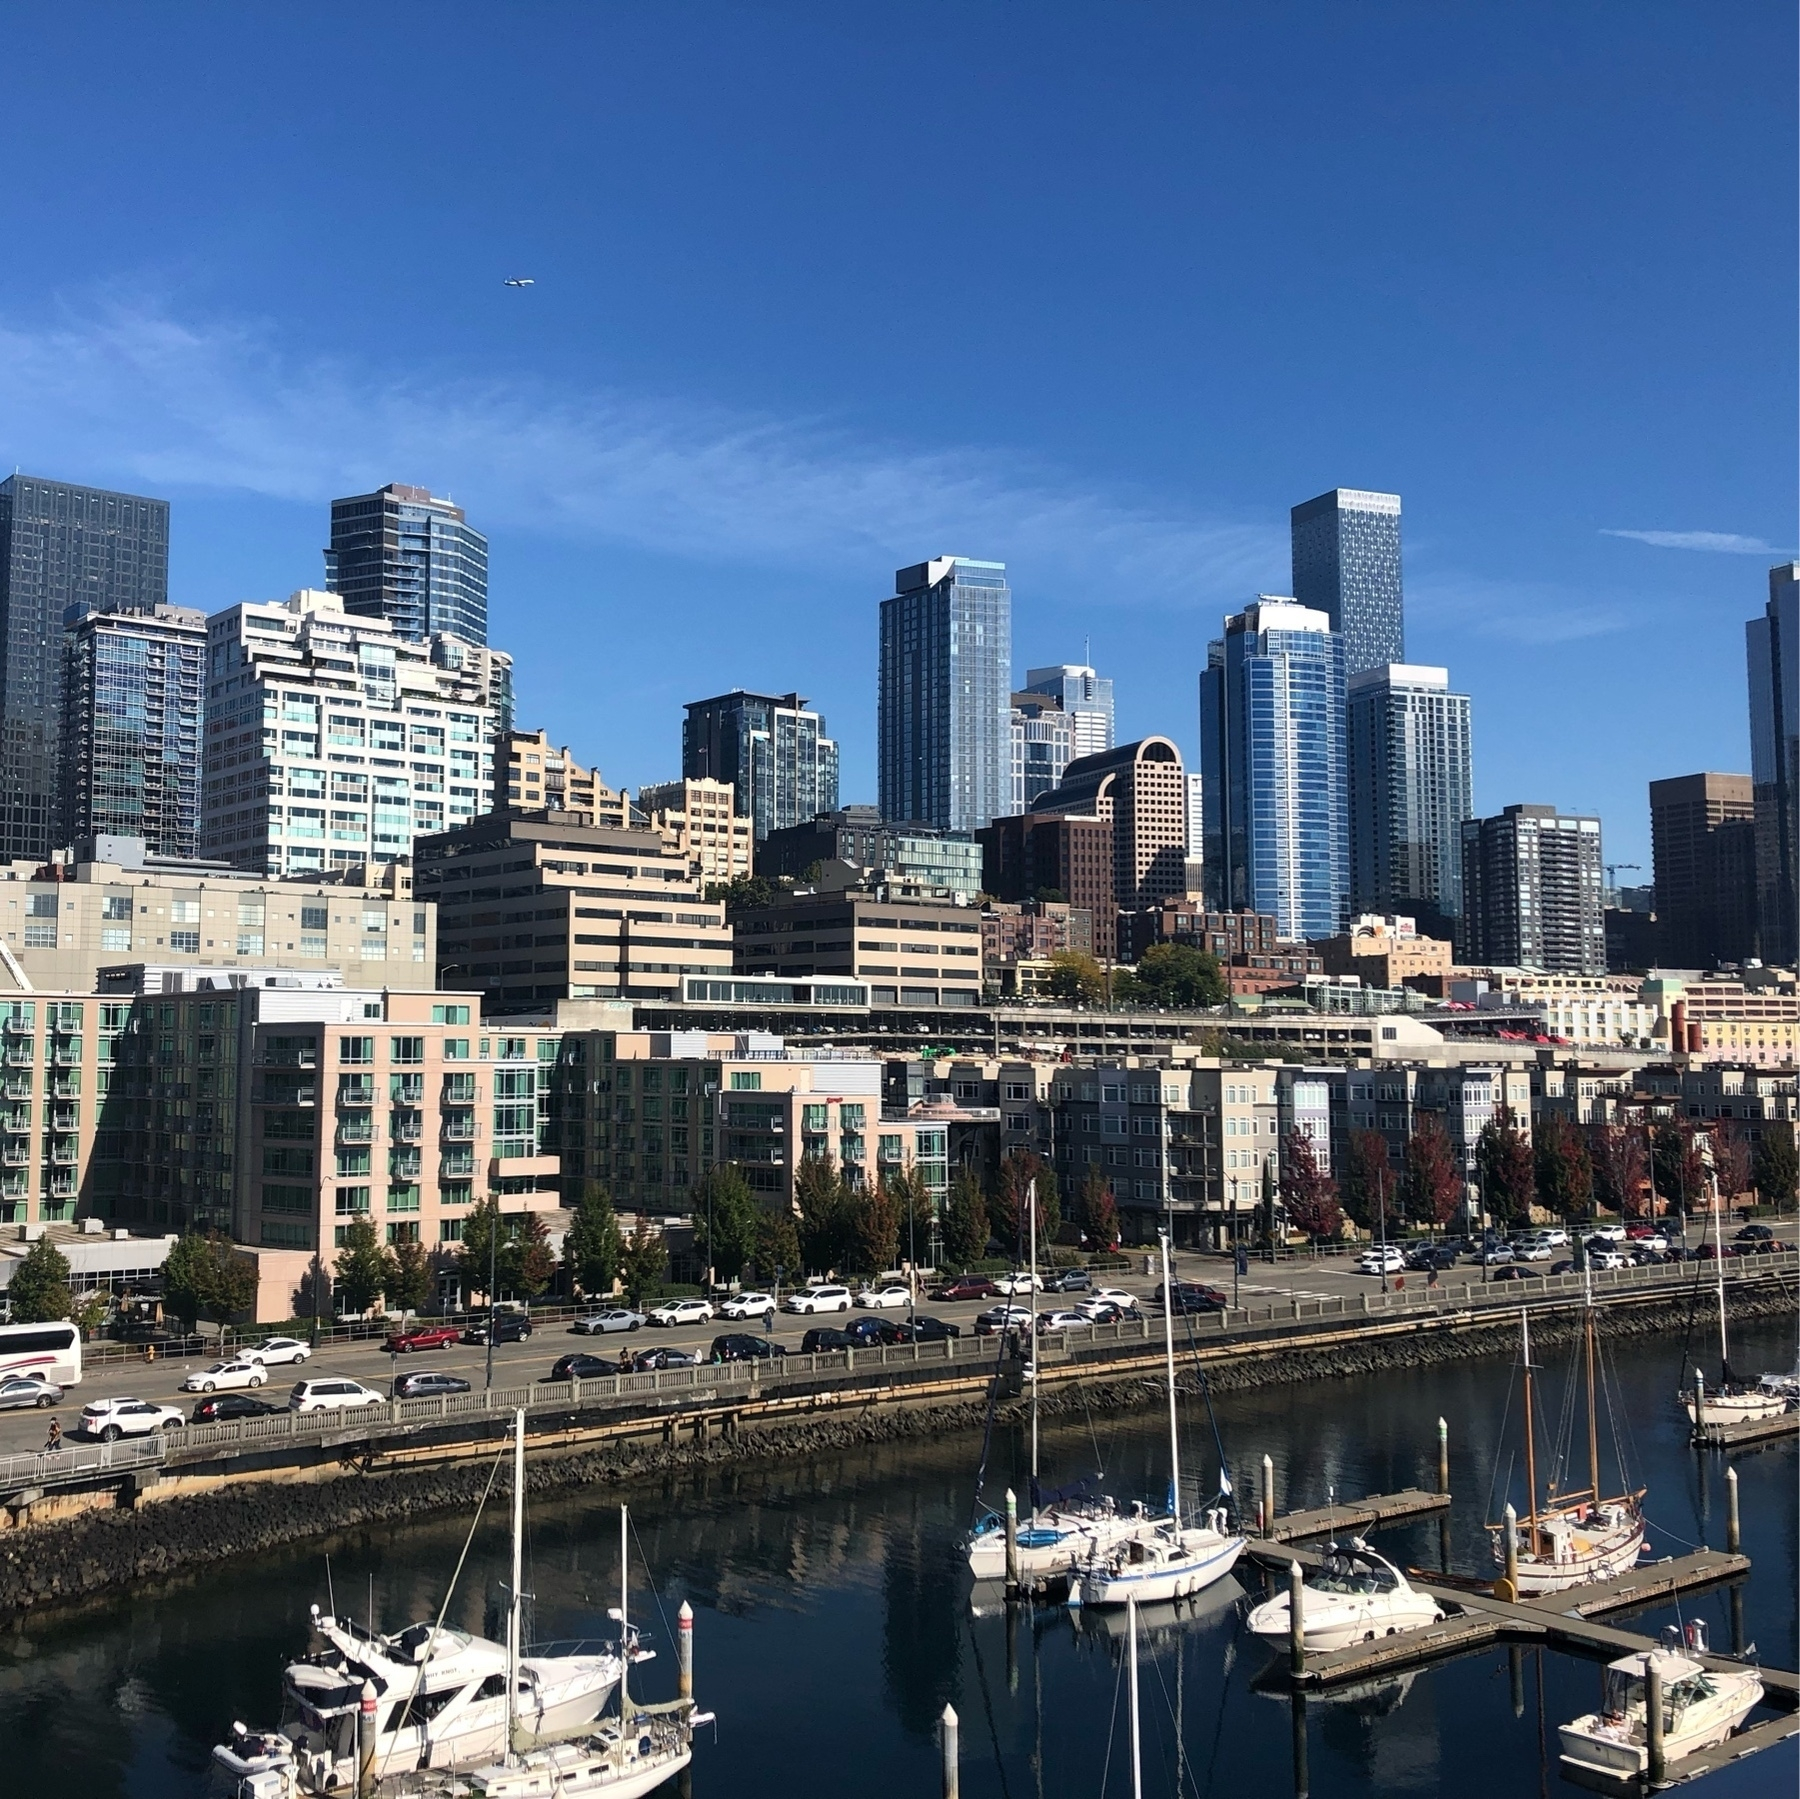 The seattle skyline on a sunny day. steel and glass towers. Below, a marina with motor boats and sail boats